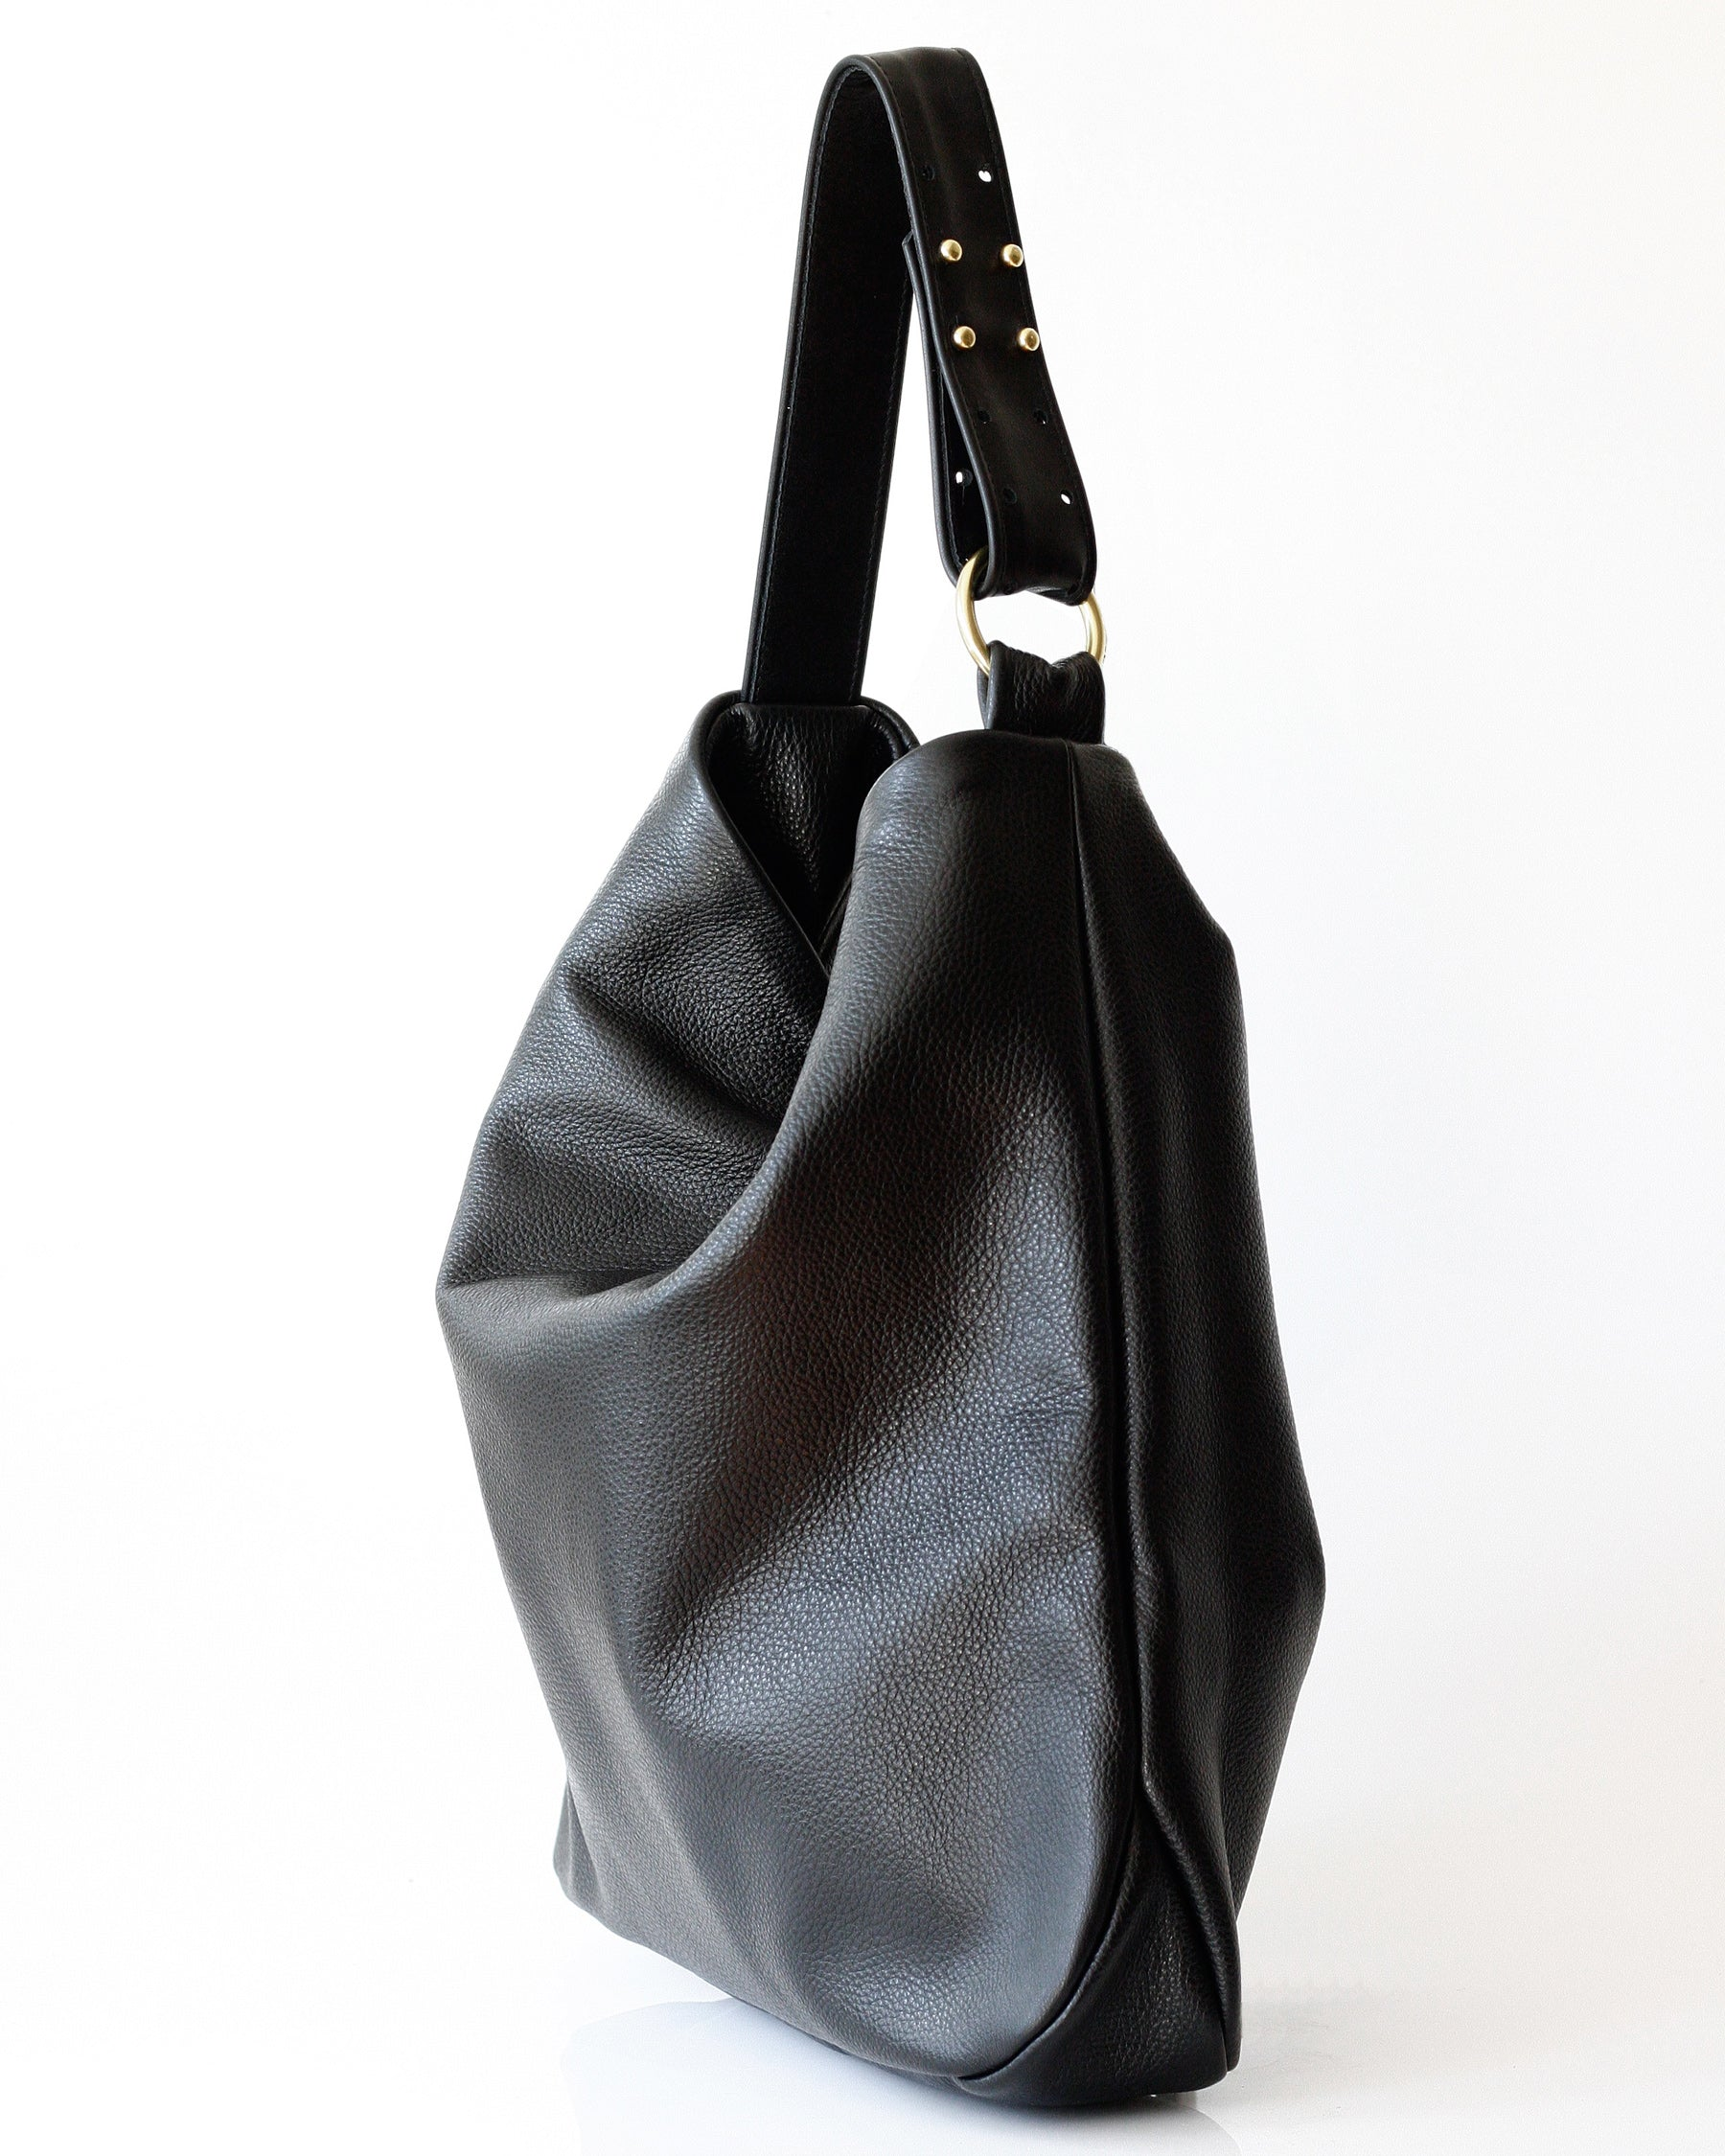 Roberta Tote - Opelle bag Permanent Collection - Opelle leather handbag handcrafted leather bag toronto Canada